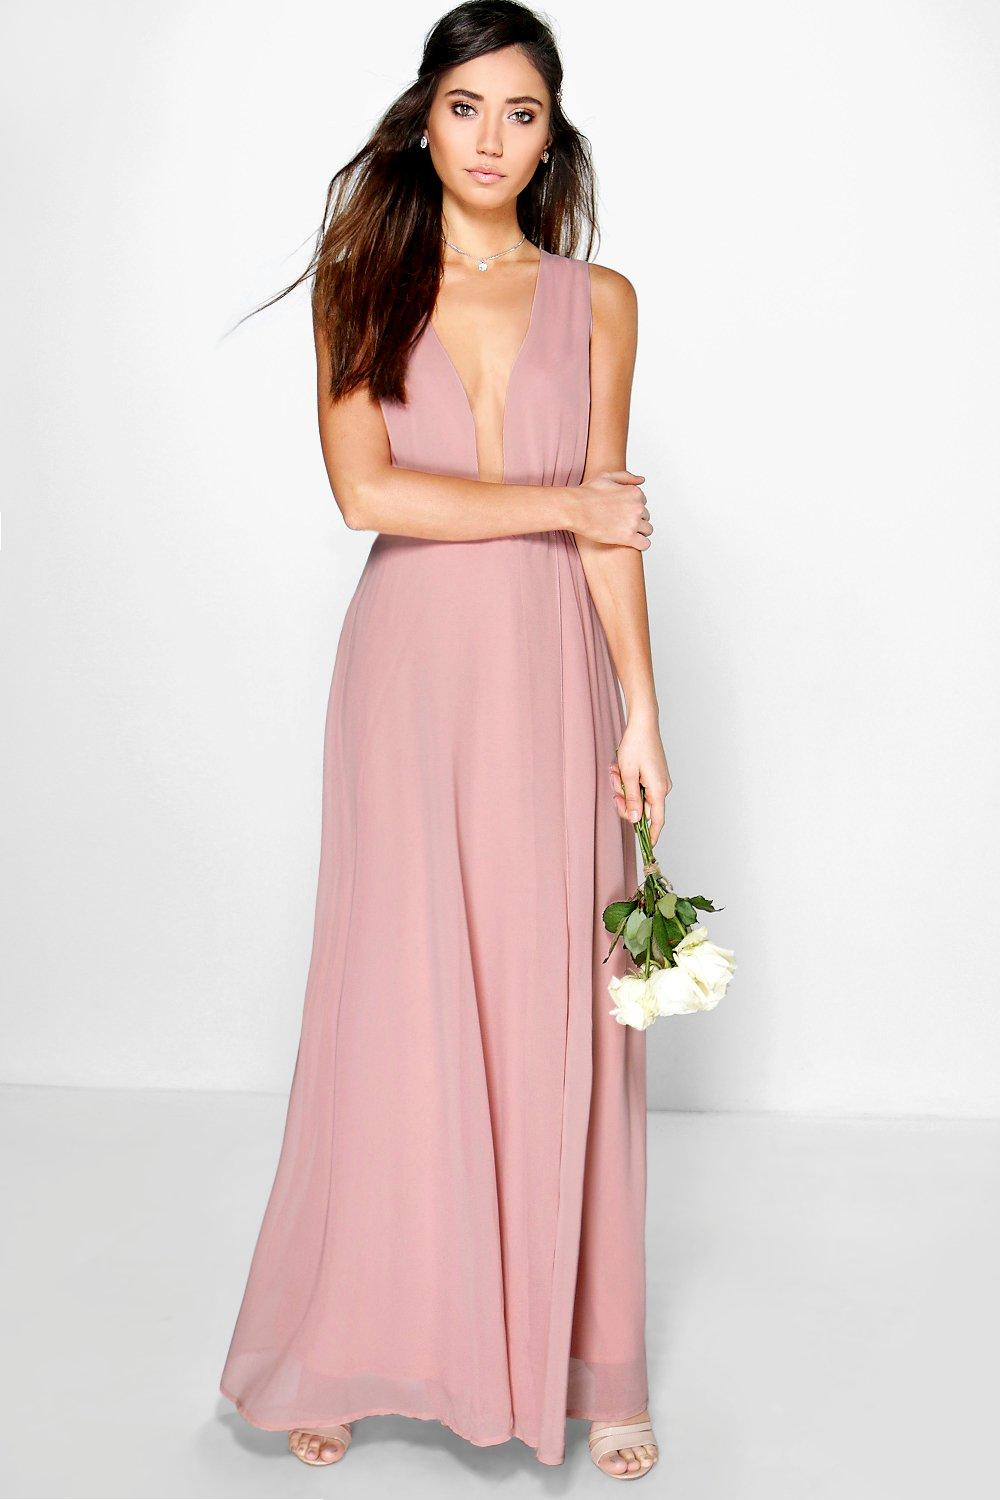 Eloise Wrap Front Chiffon Maxi Dress at boohoo.com